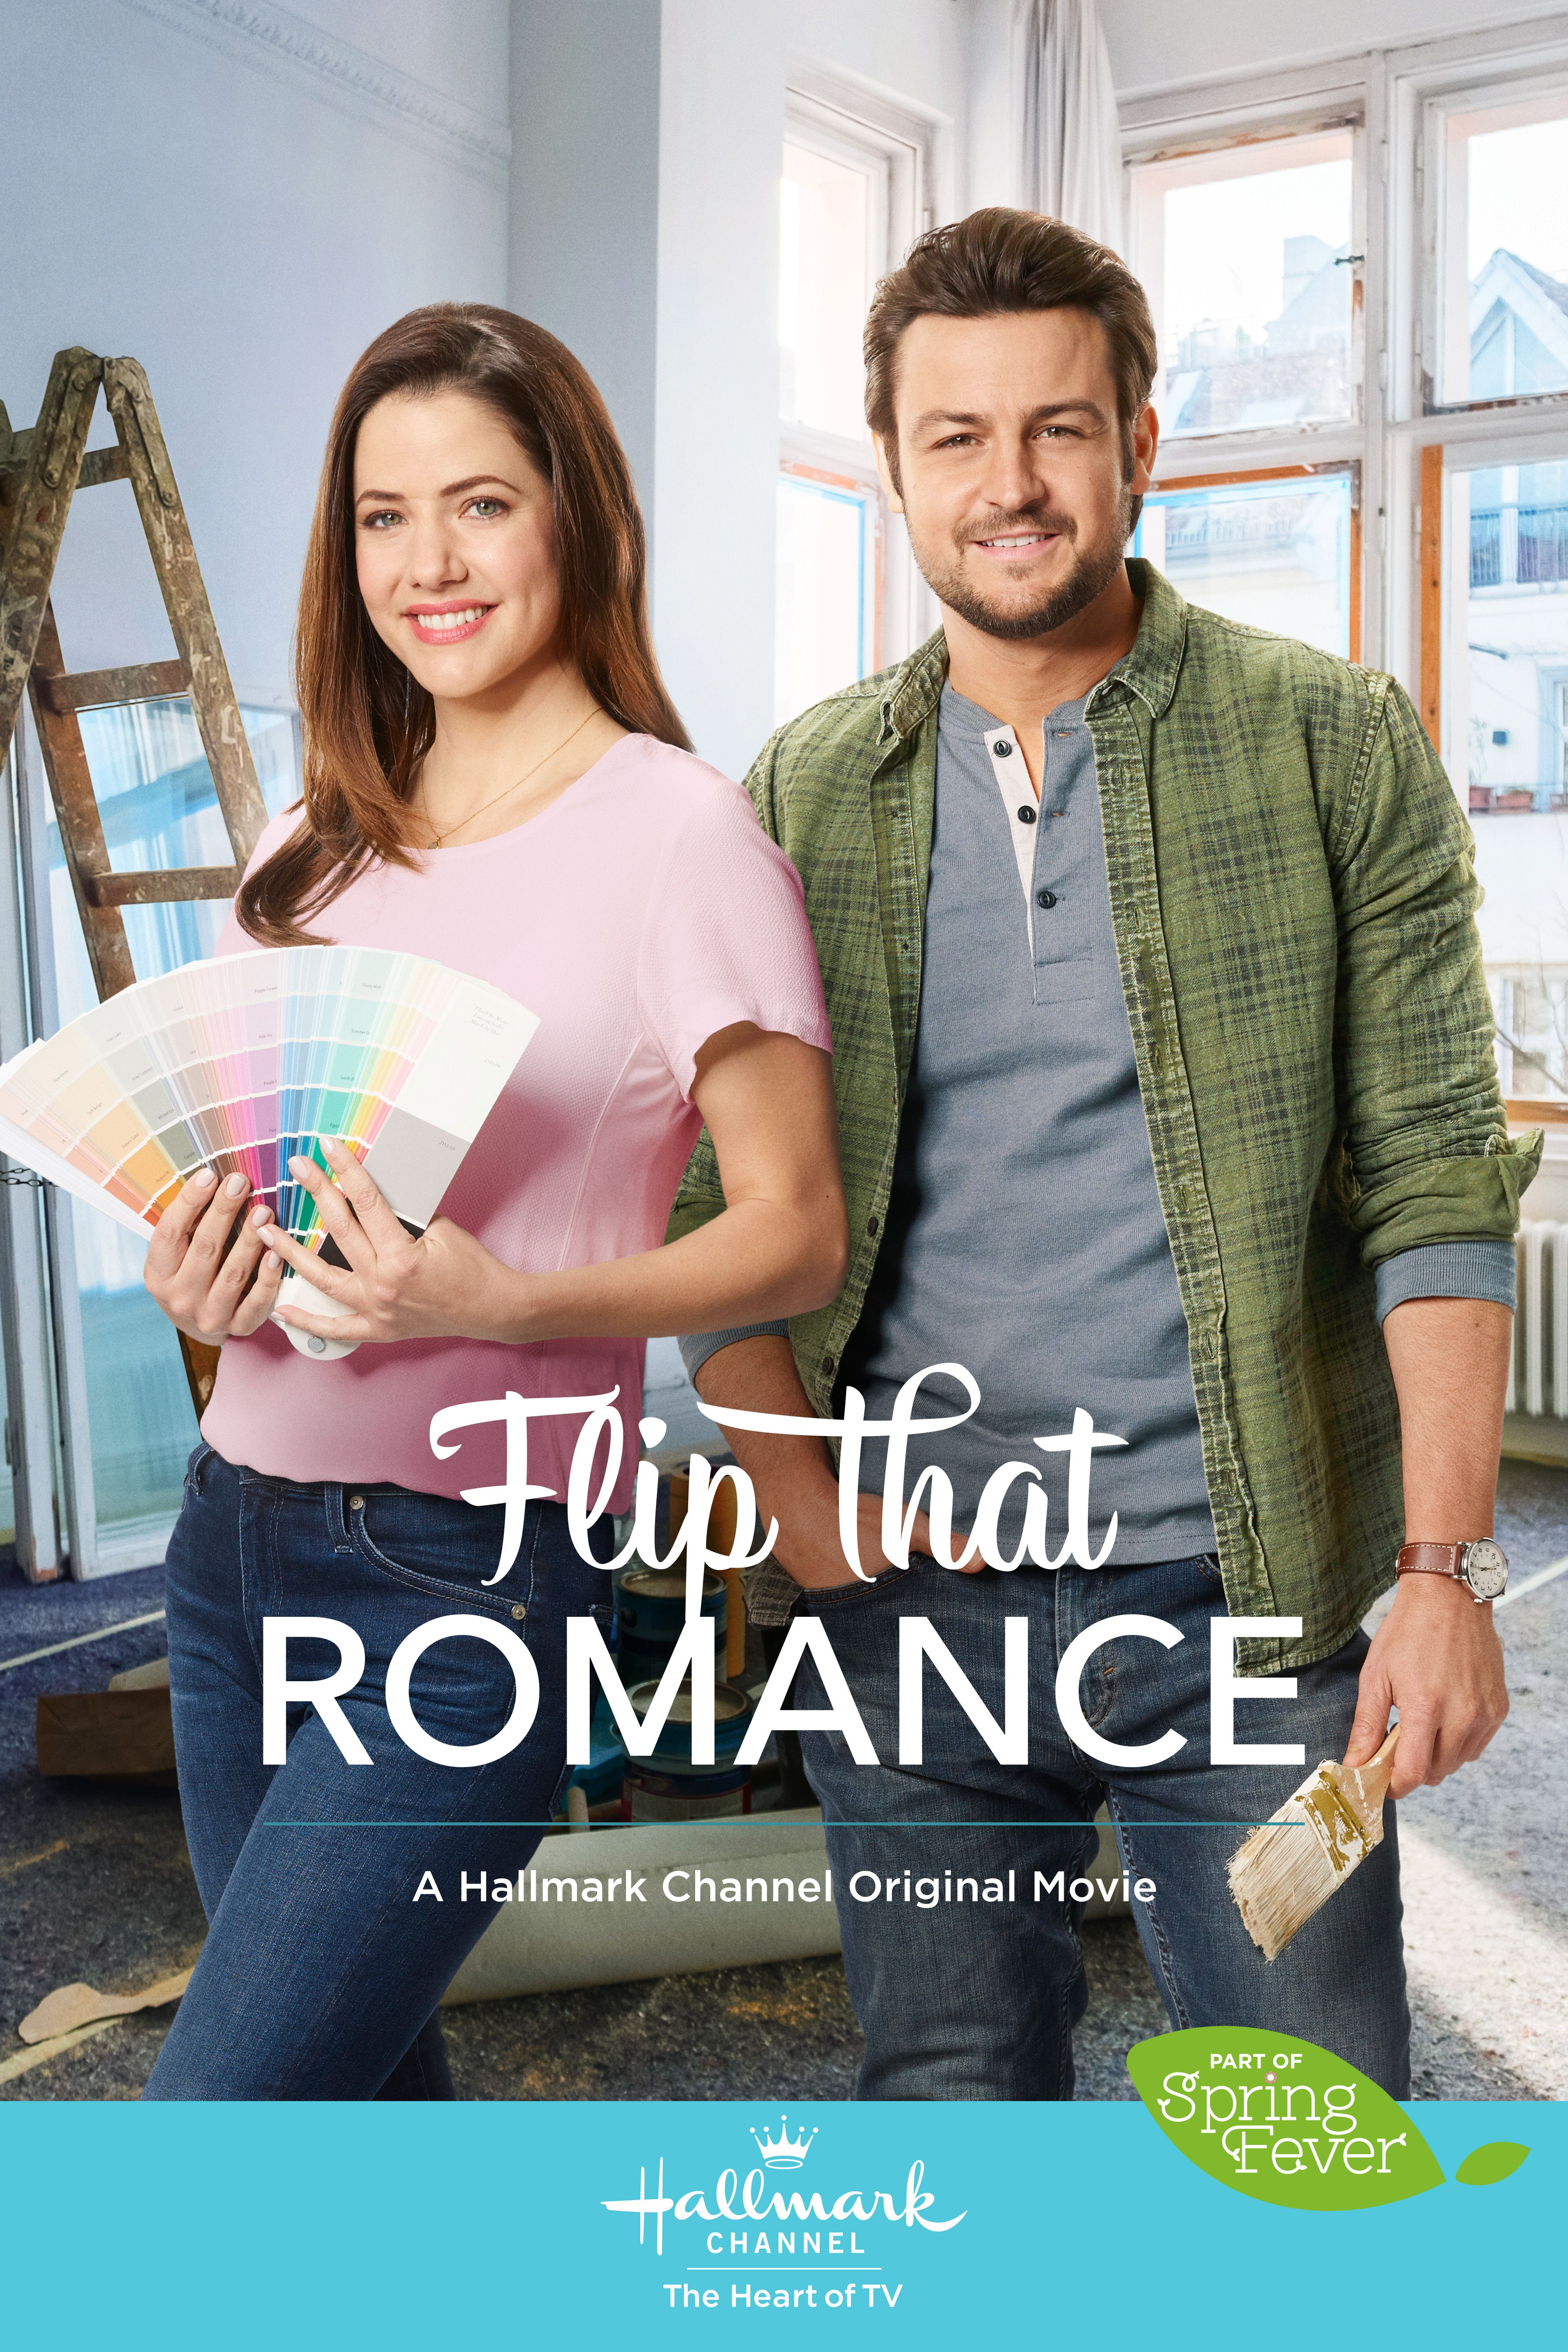 Can You Get Hallmark Channel On Hulu Flip That Romance Stars Julie Gonzalo And Tyler Hynes Who Renovate A Home Together Will They Flip For Christmas Movies On Tv Hallmark Movies Lifetime Movies